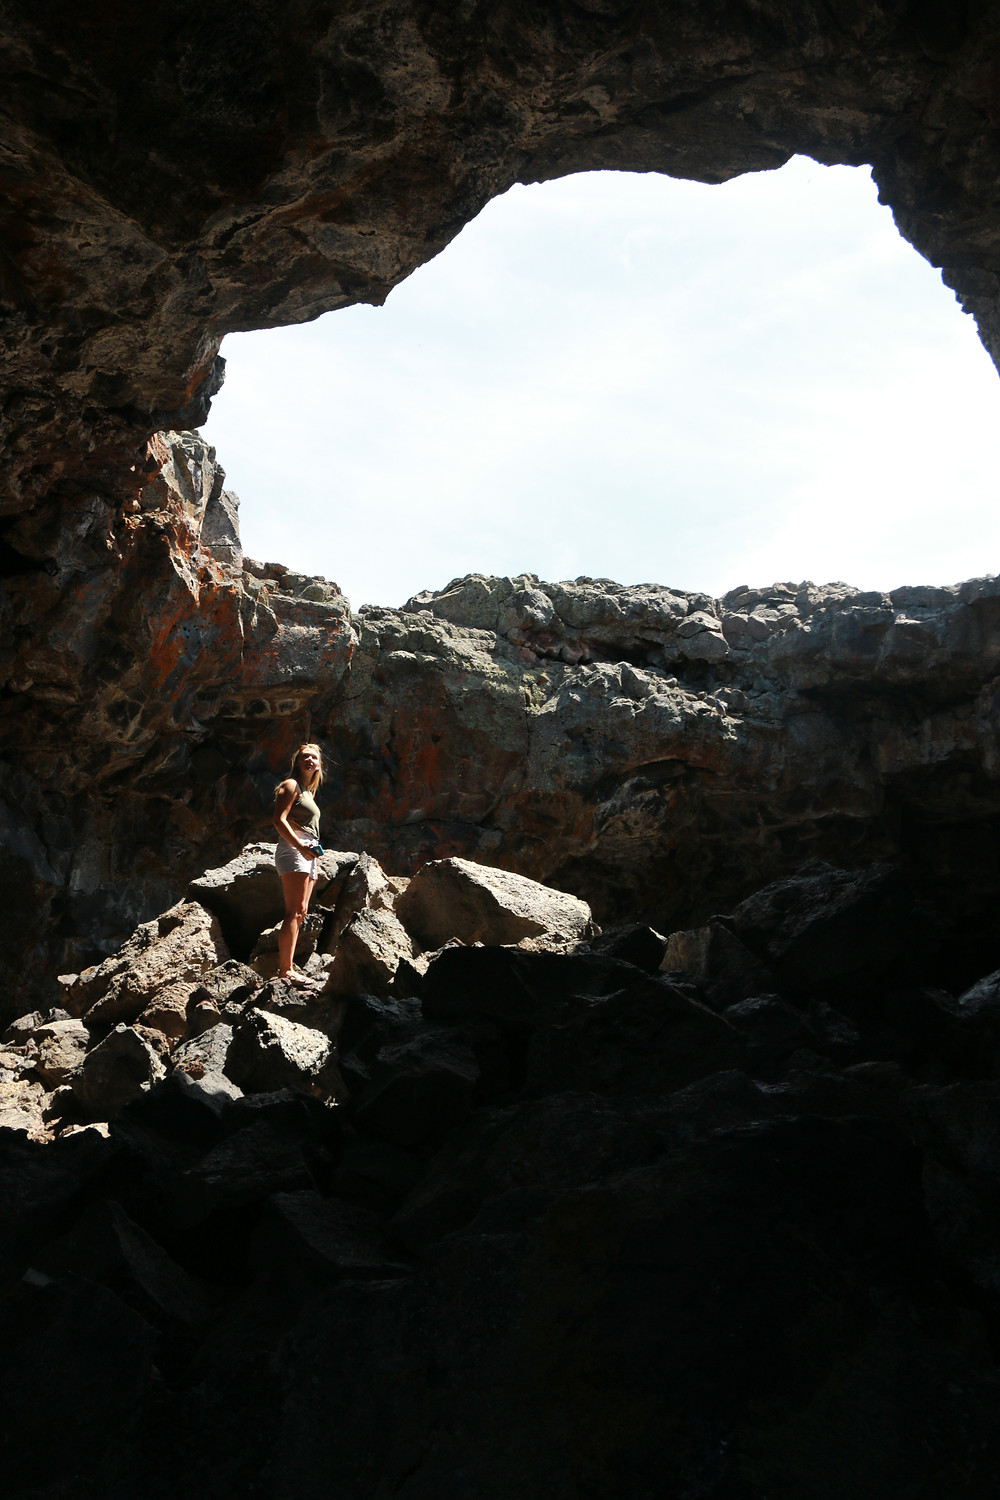 Caves in Carters of the Moon National Park